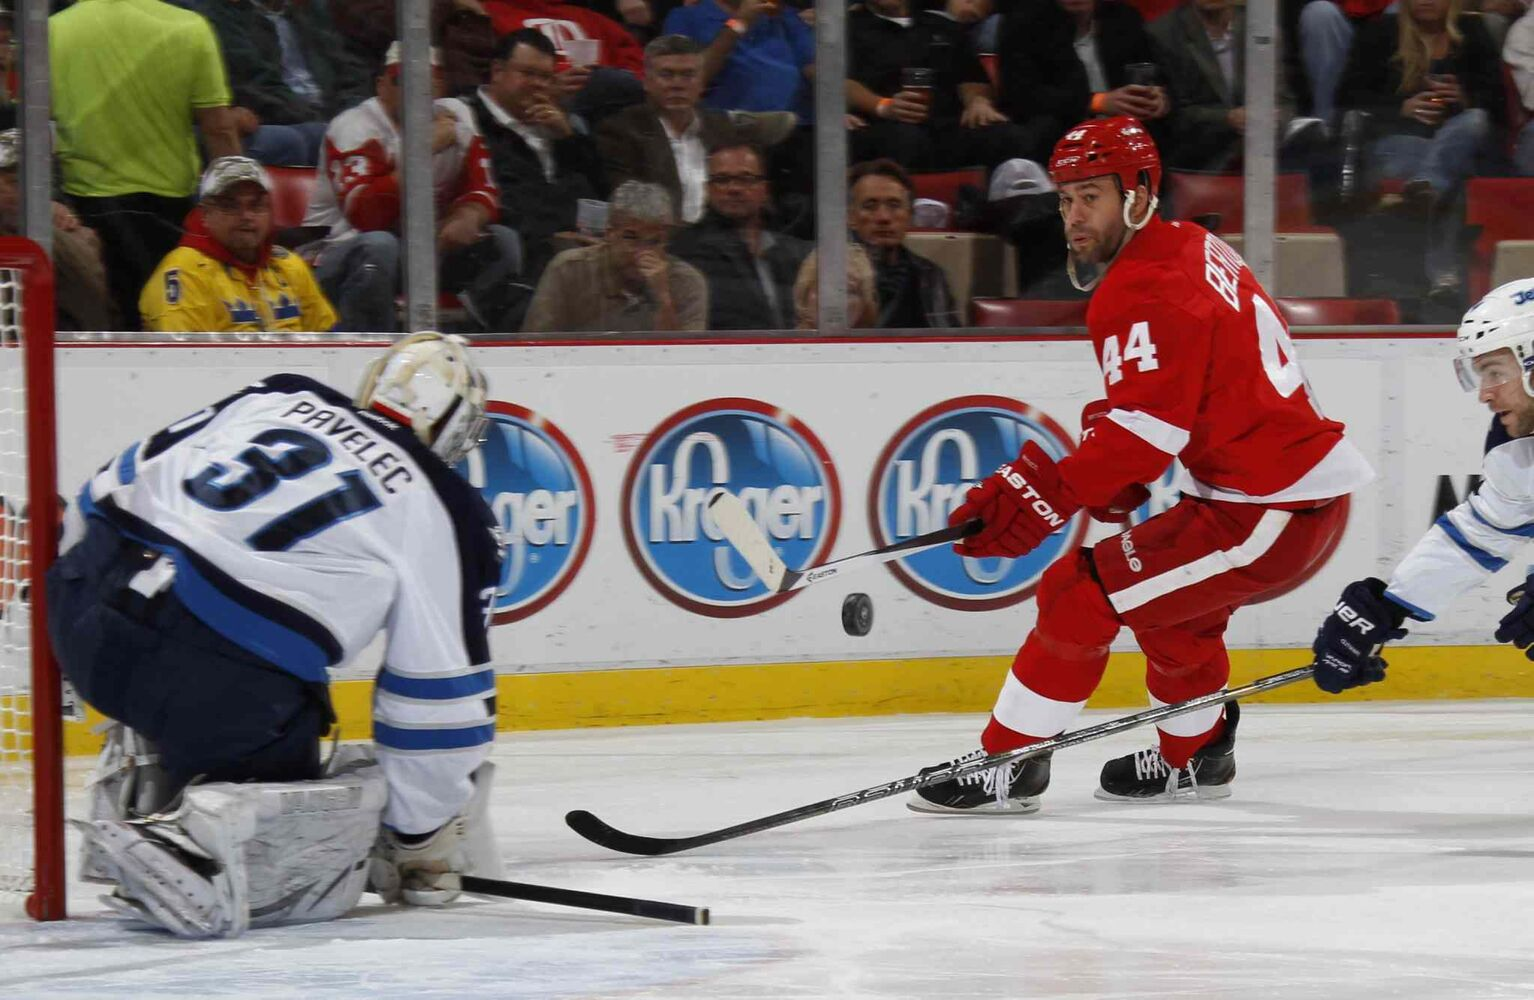 Detroit Red Wings forward Todd Bertuzzi puts a shot on Winnipeg Jets goalie Ondrej Pavelec in the first period. (Julian H. Gonzalez / Tribune Media MCT)